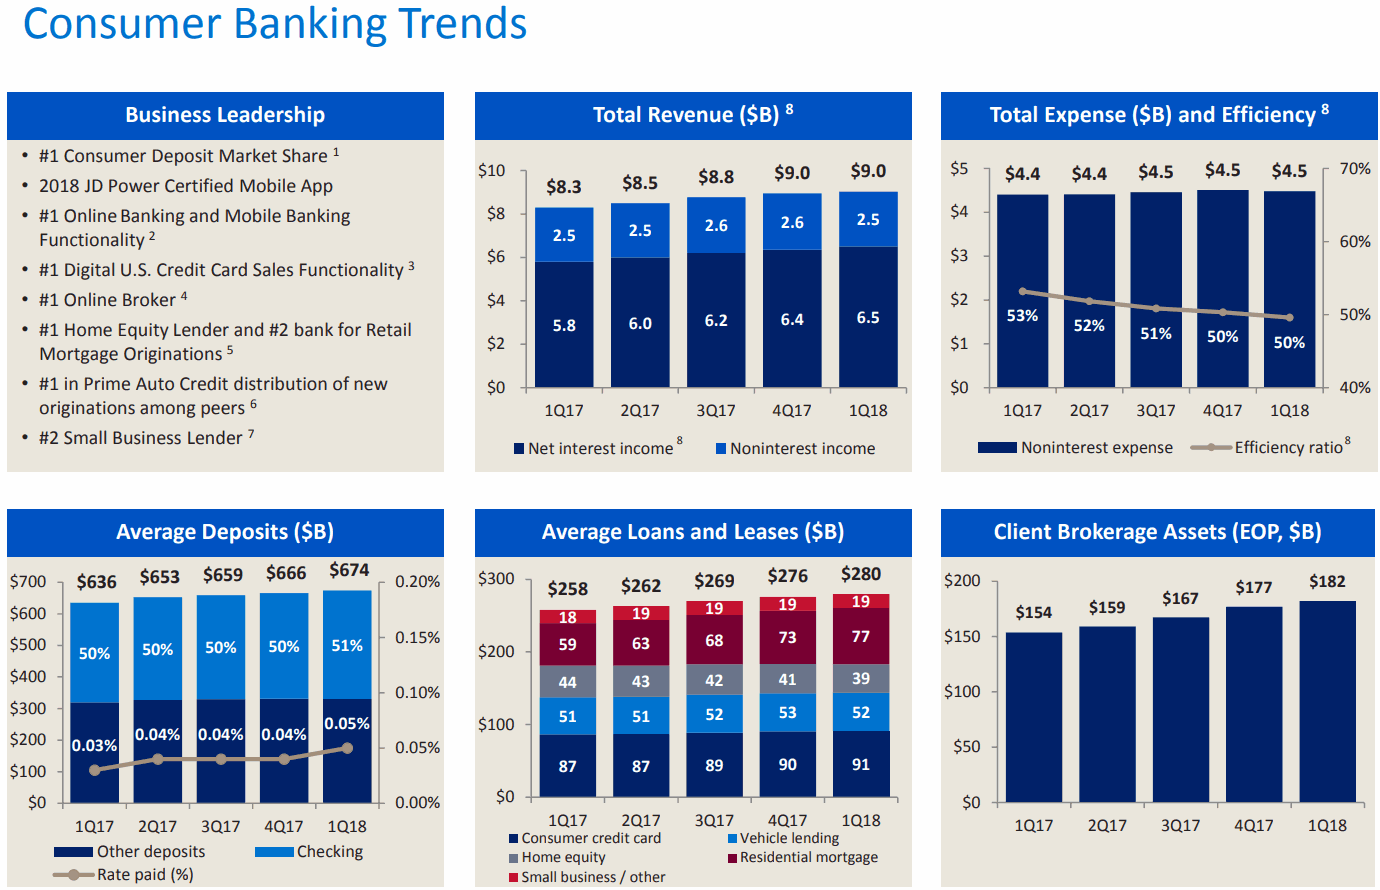 Bank-of-America-Consumer-Banking-Trends